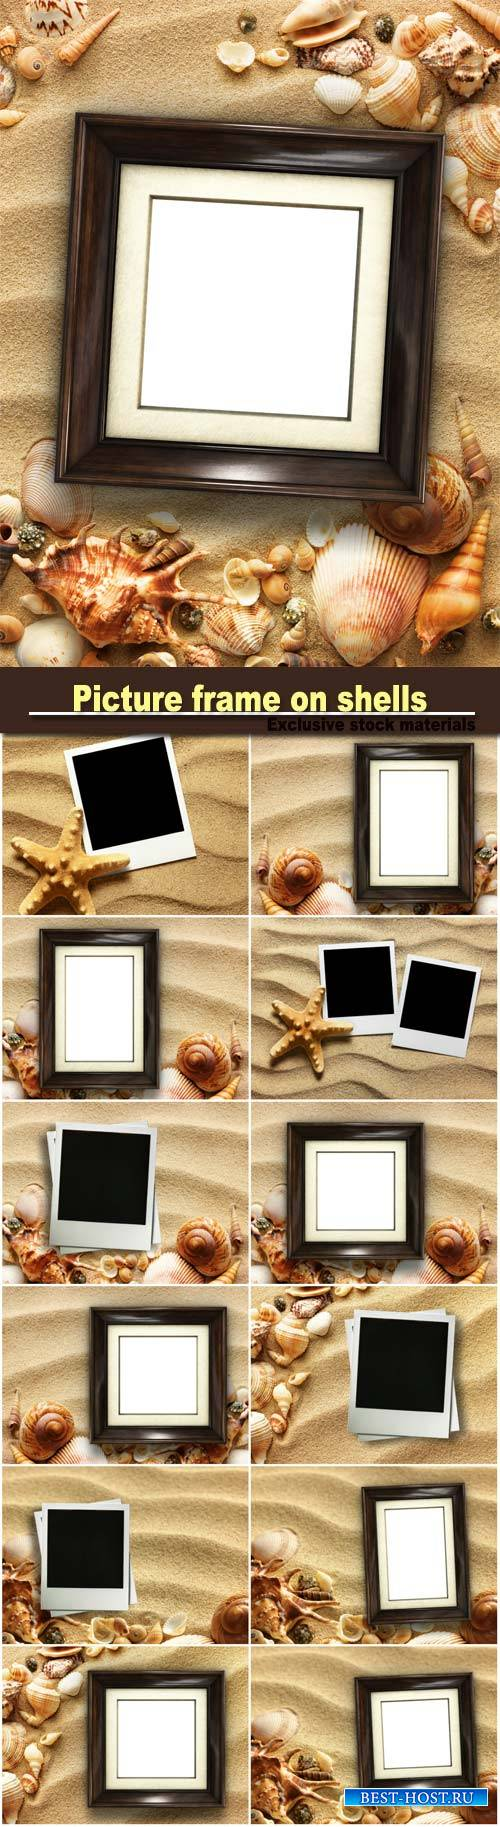 Picture on shells and sand background